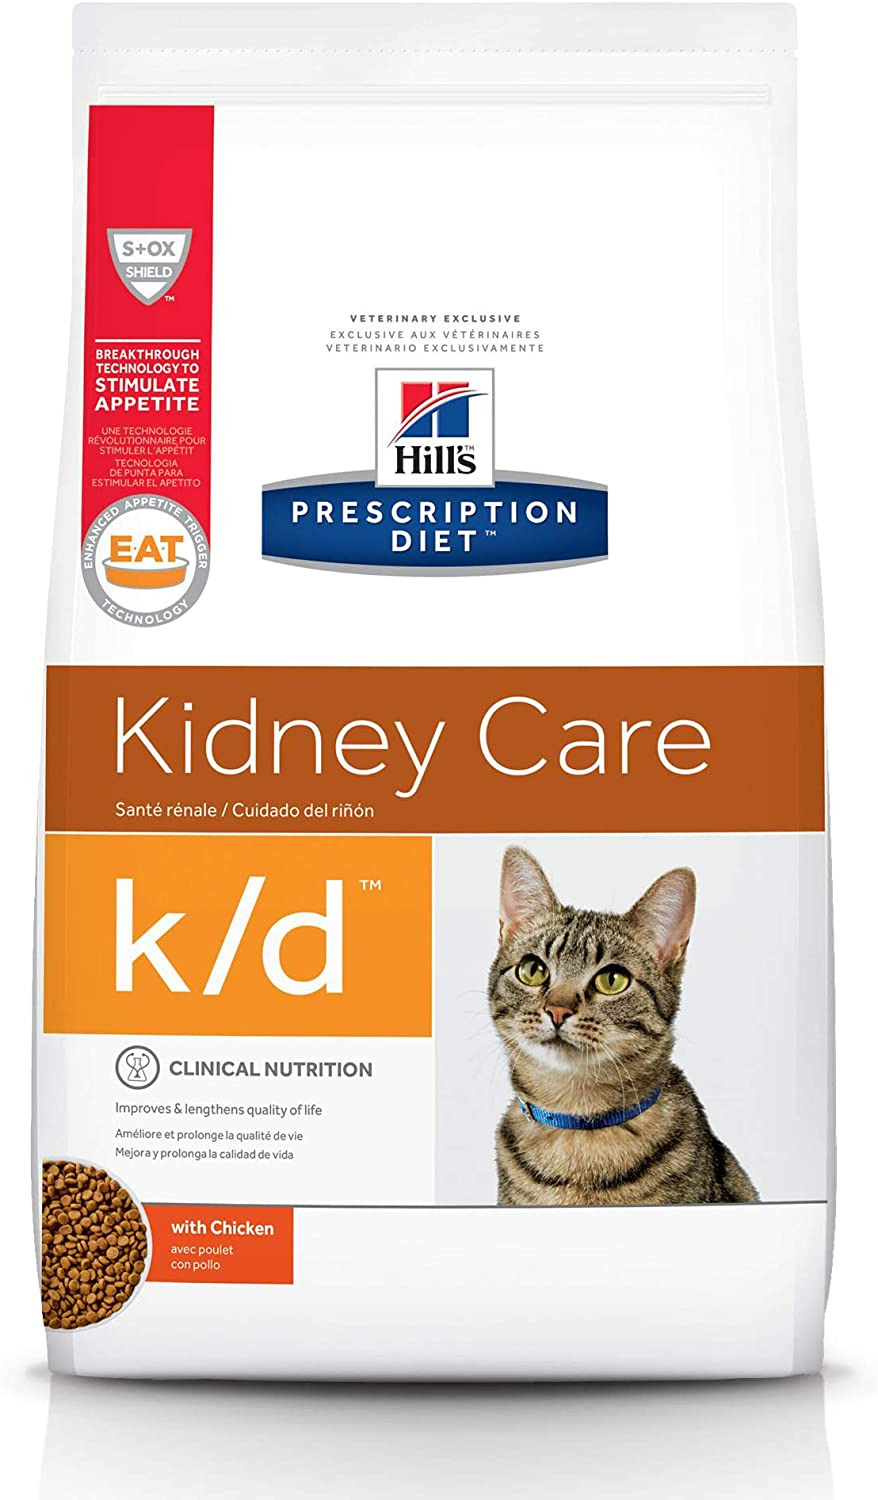 Hill's Prescription Diet k d Kidney Cat Dry Care Veterinar Food Max NEW before selling ☆ 44% OFF